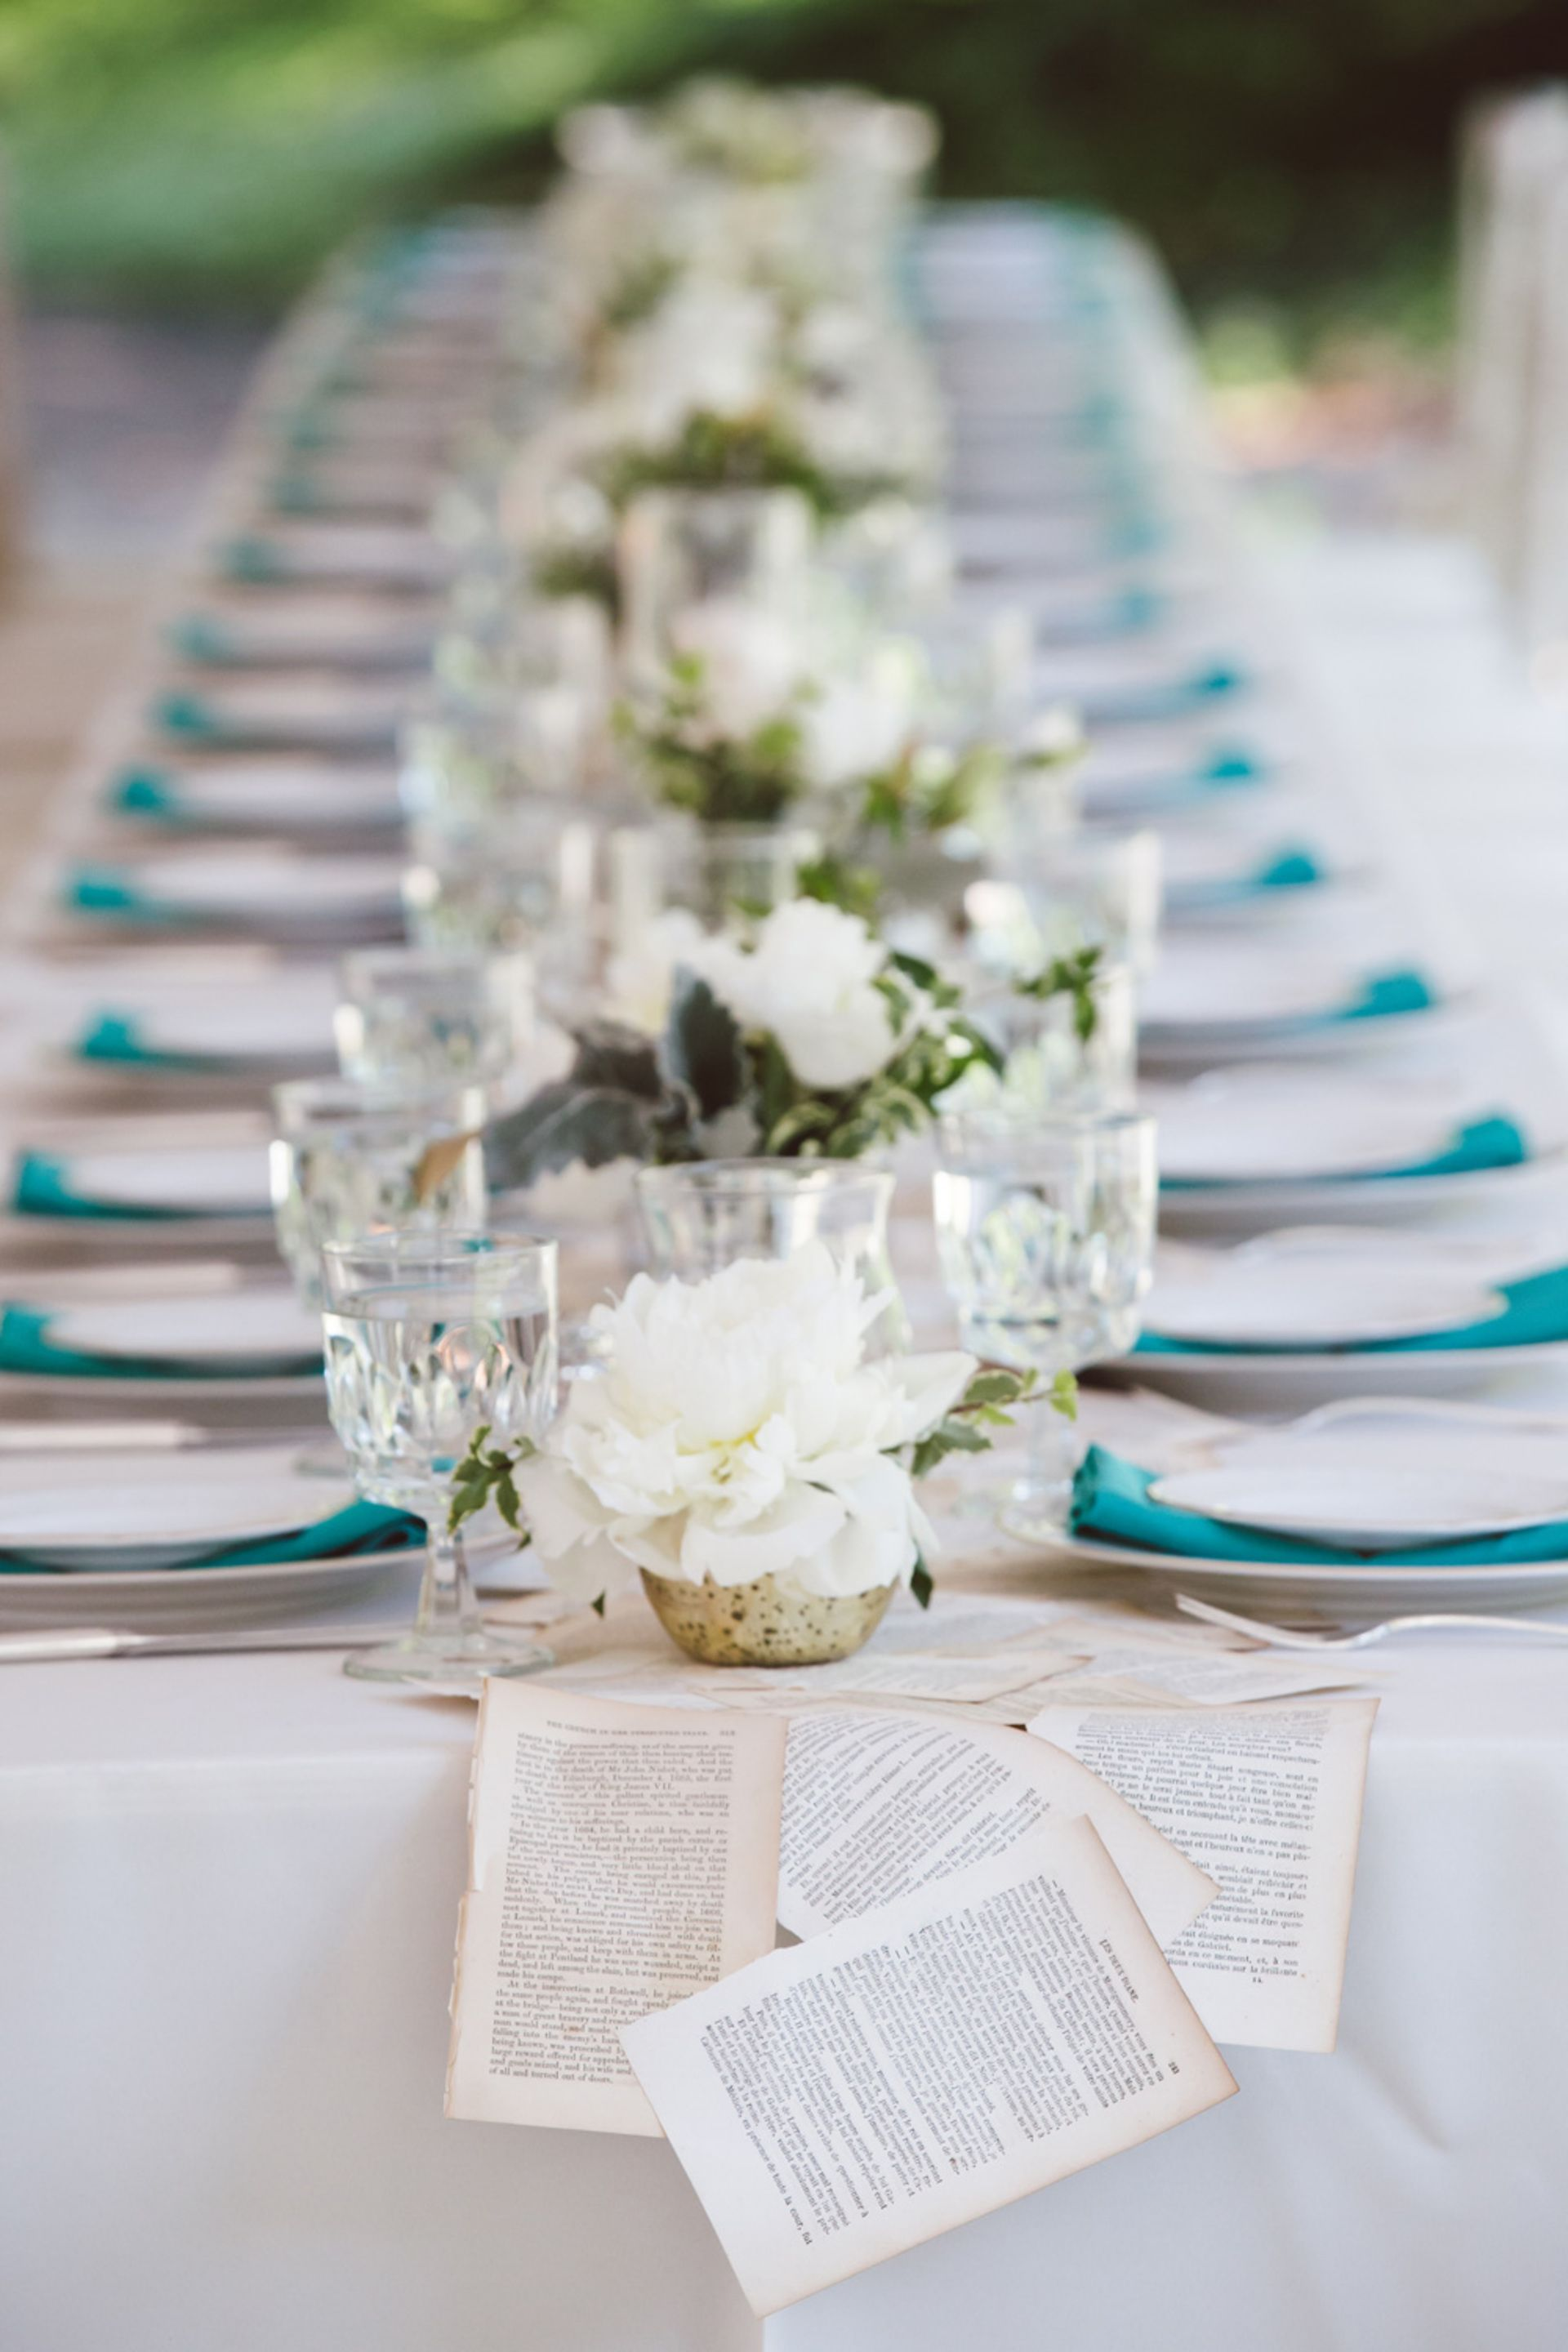 The Smarter Way to Wed | Literary themes, Bakeries and Wedding